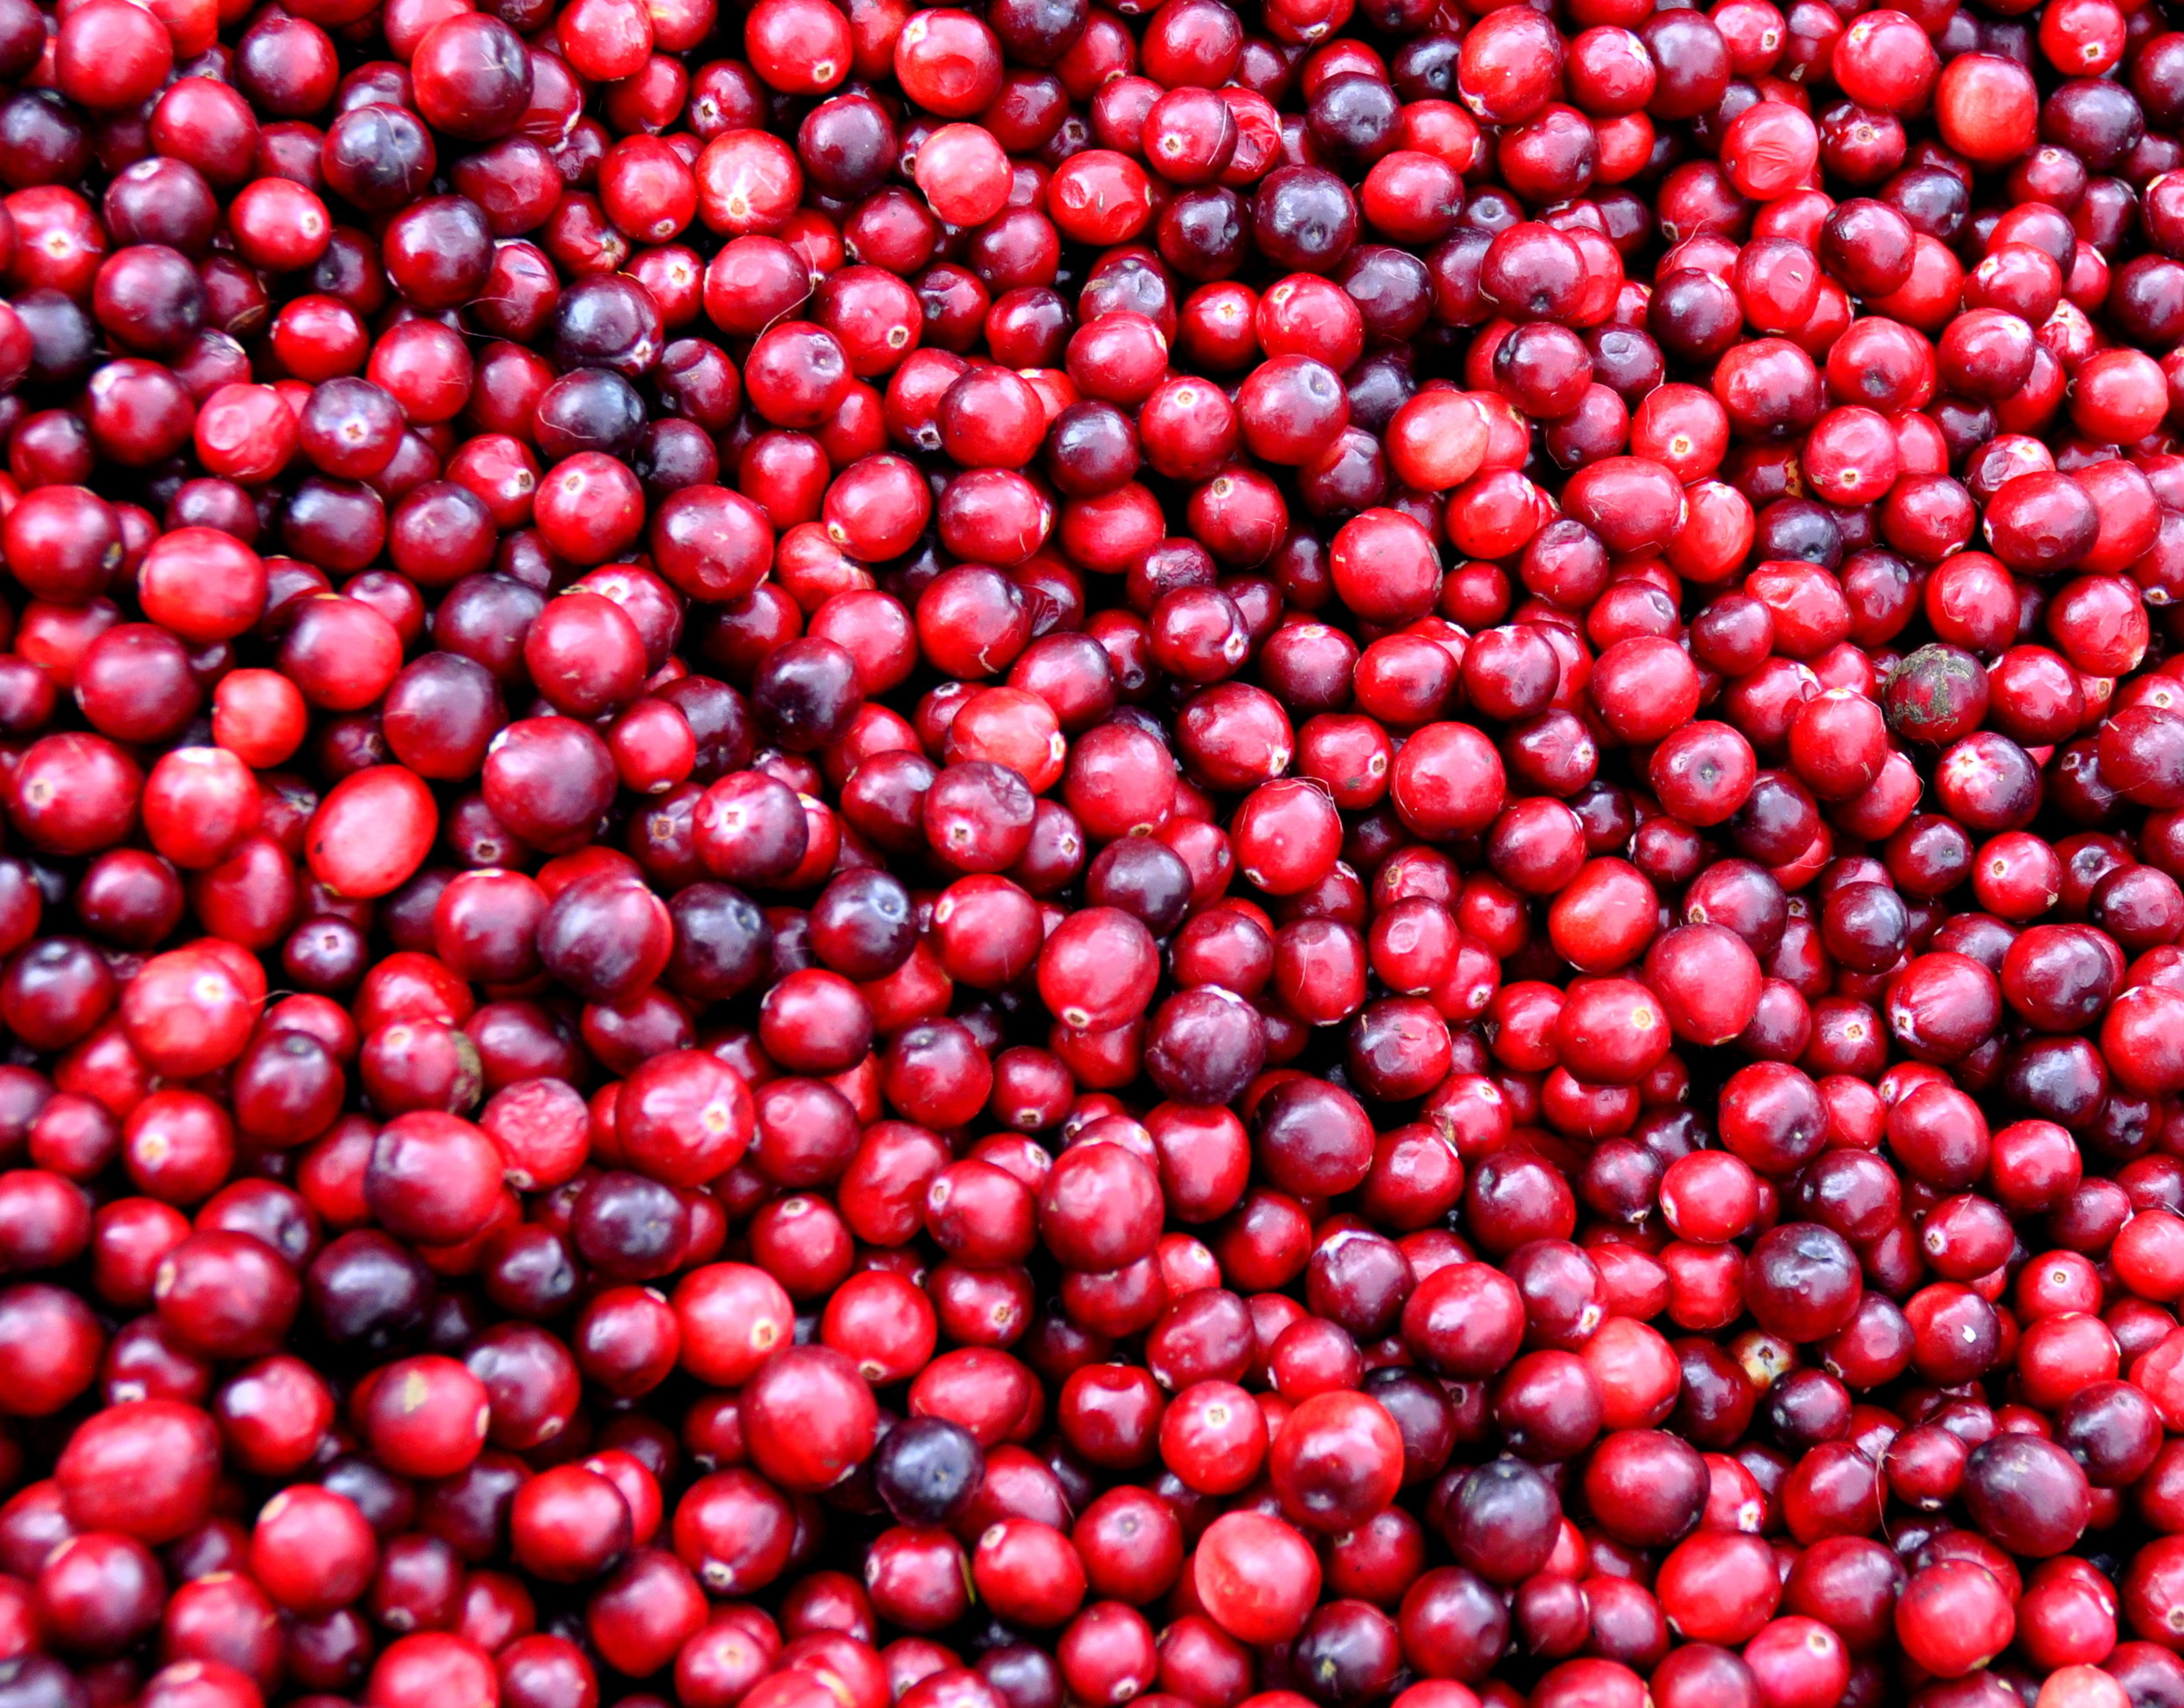 Fresh, local cranberries from Bloom Creek Cranberry Farm. Photo copyright 2012 by Zachary D. Lyons.